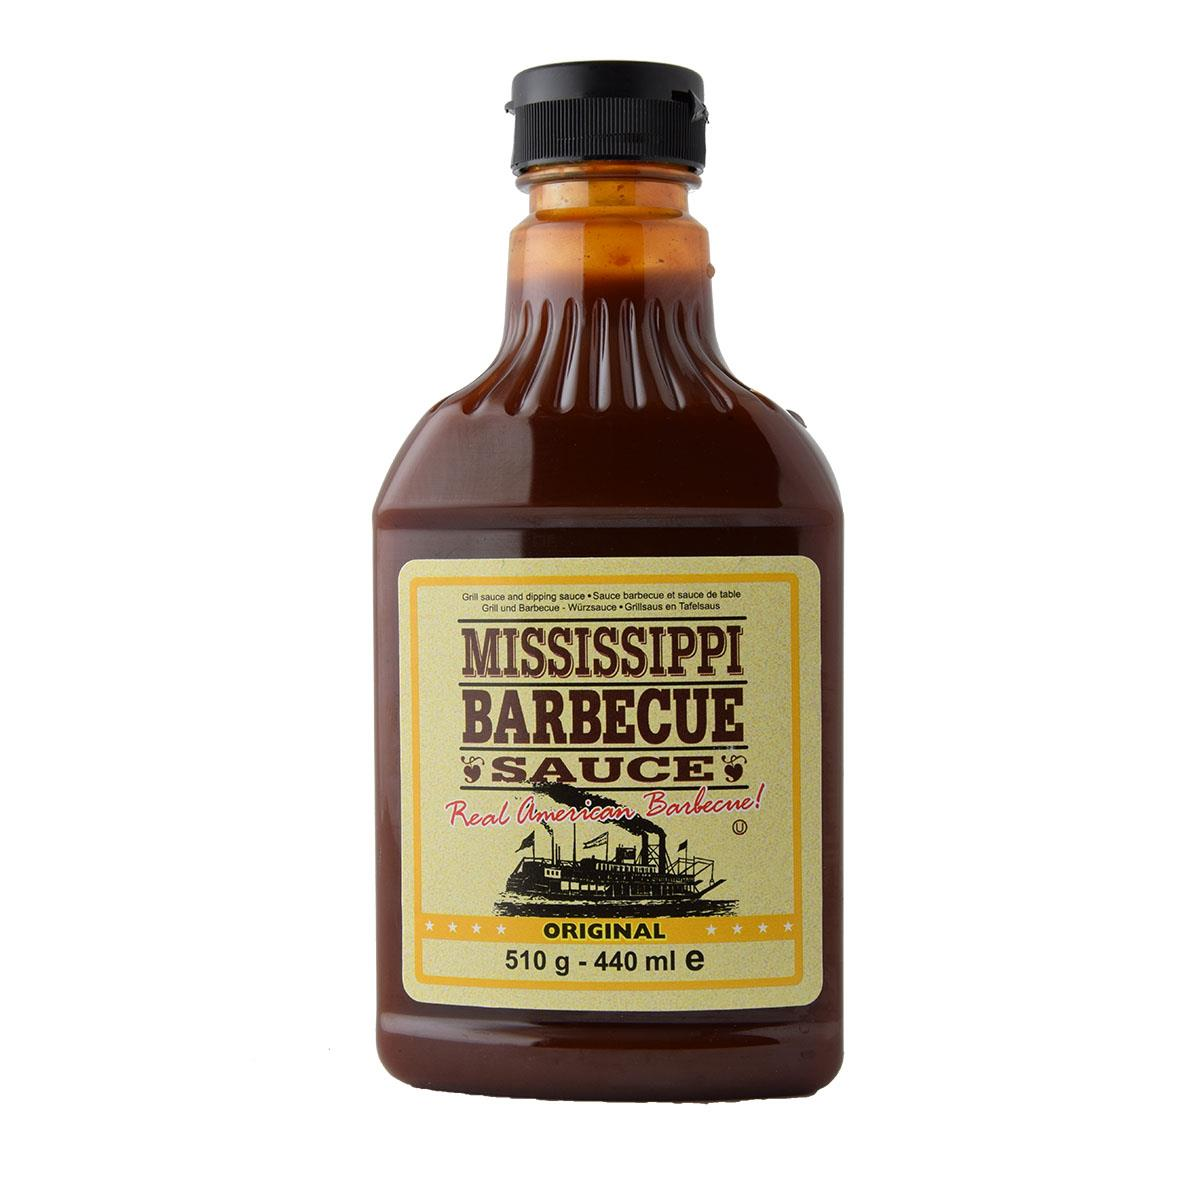 Mississippi Barbecue Sauce 440ml